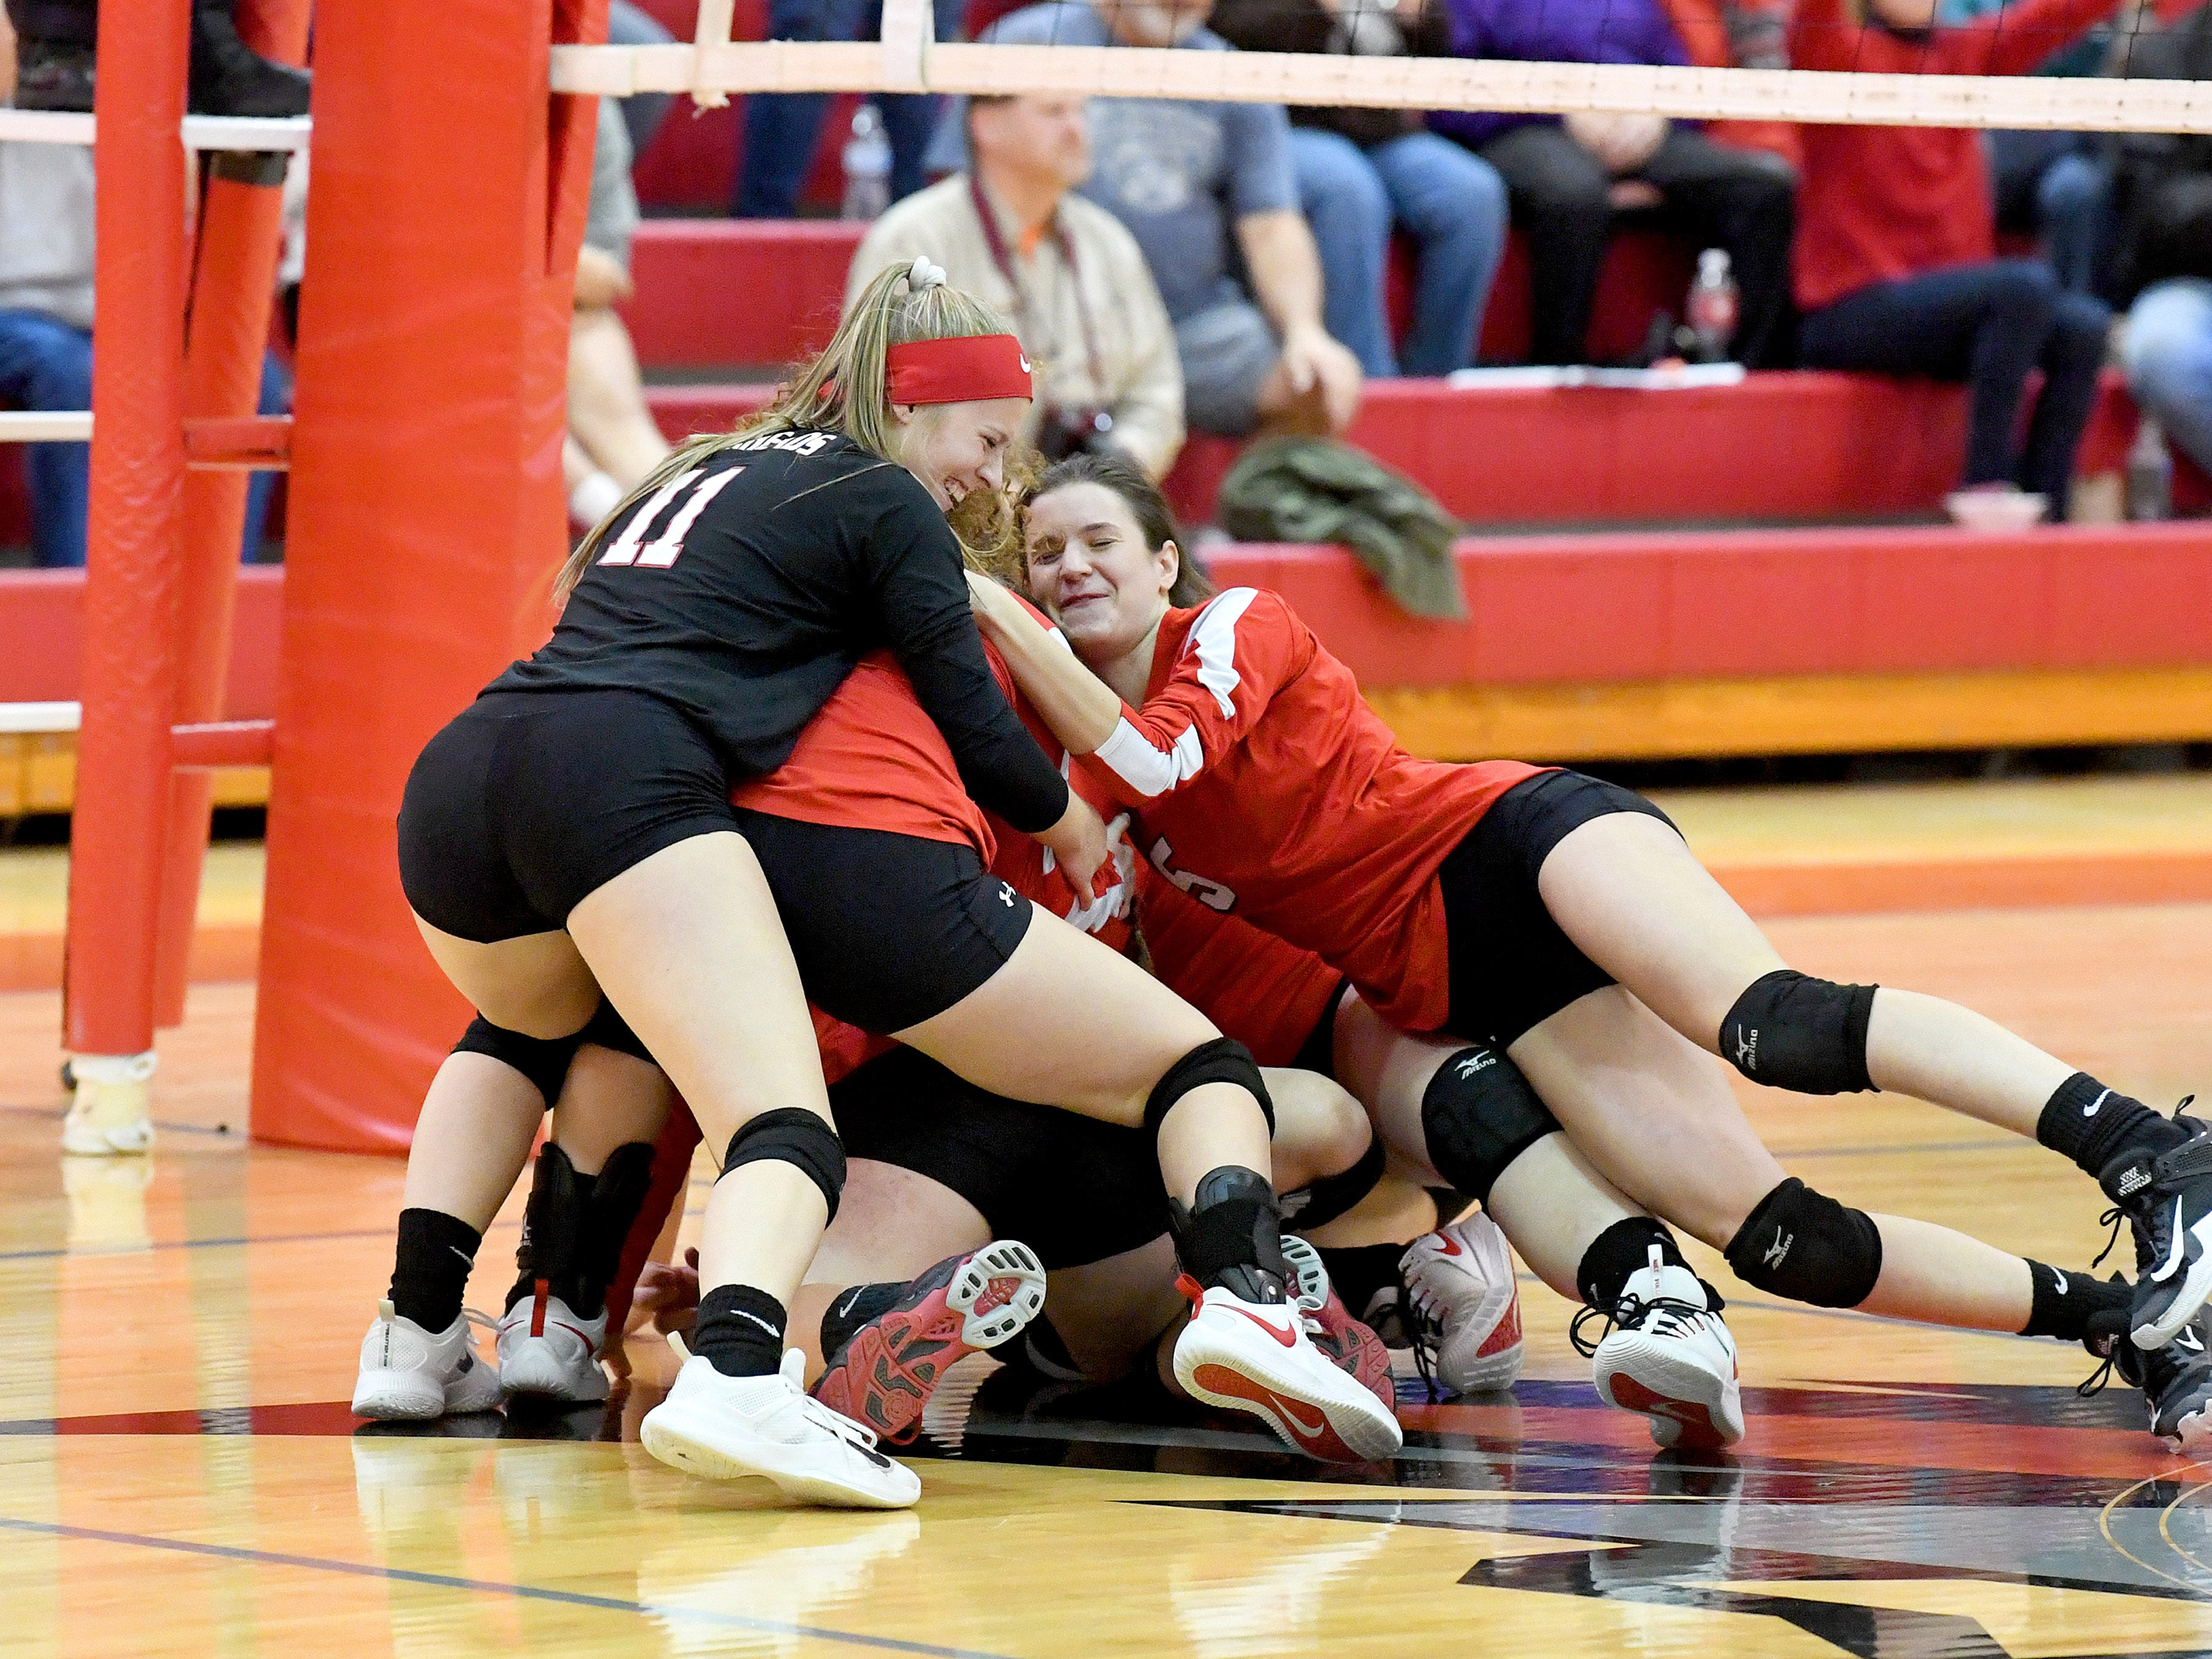 Riverheads players celebrate with a dogpile on the court after scoring the final point in the third set to sweep Altavista and win the Region 1B volleyball championship in Greenville on Wednesday, Nov. 7, 2018.